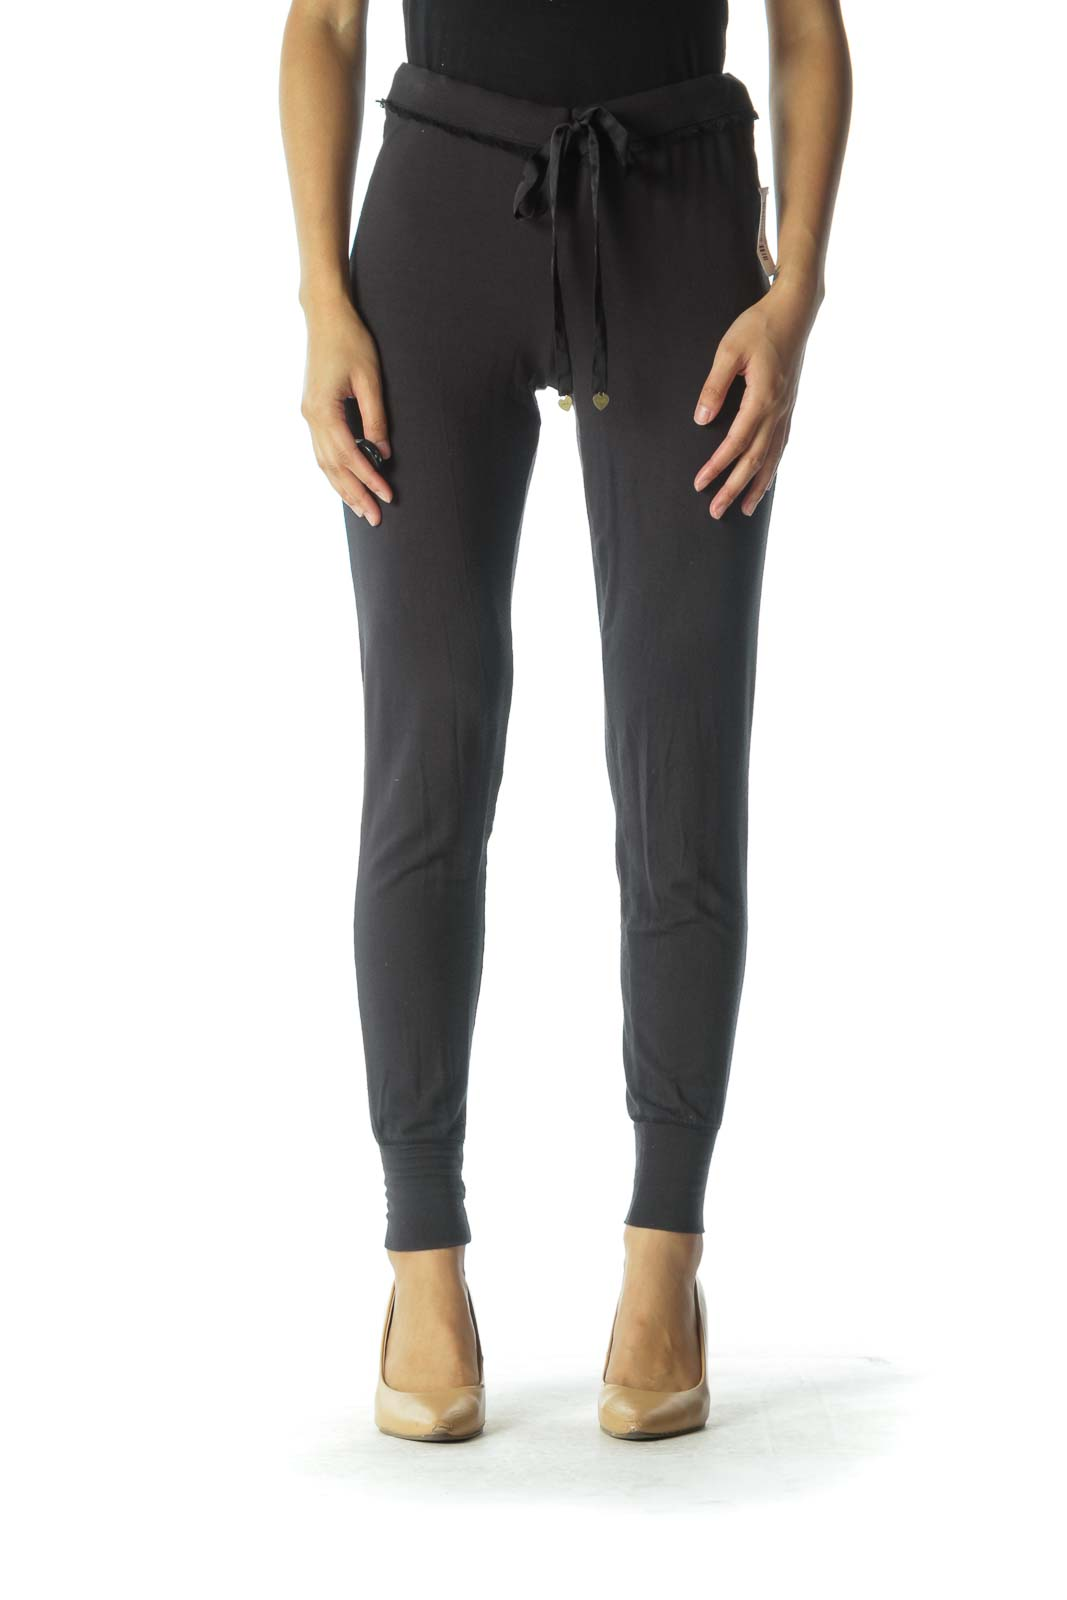 Gray Light-weight Sweat Pants with Lace Trim